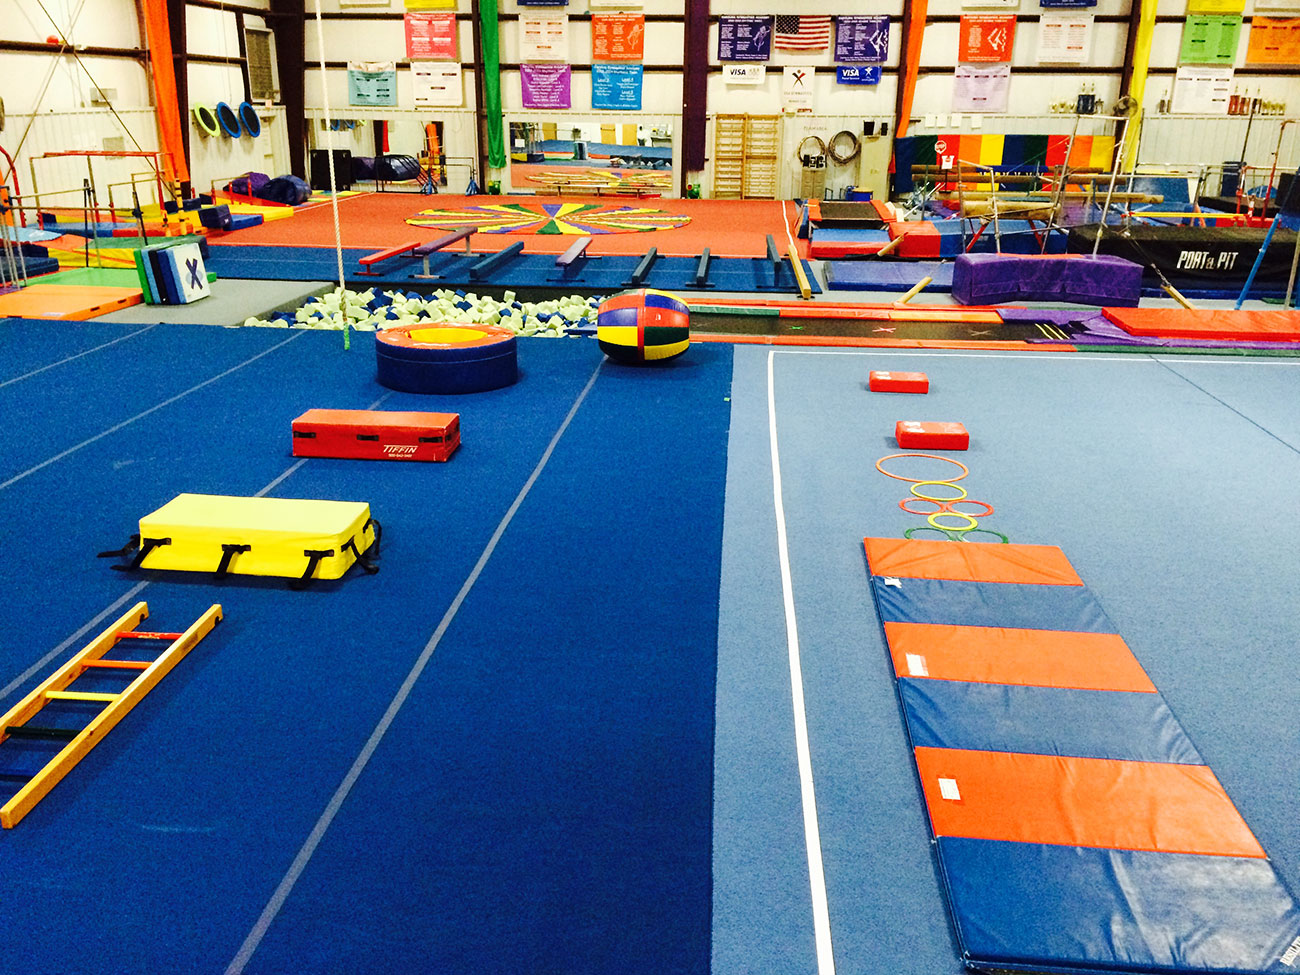 The gym includes pads, equipment, and a large foam pit